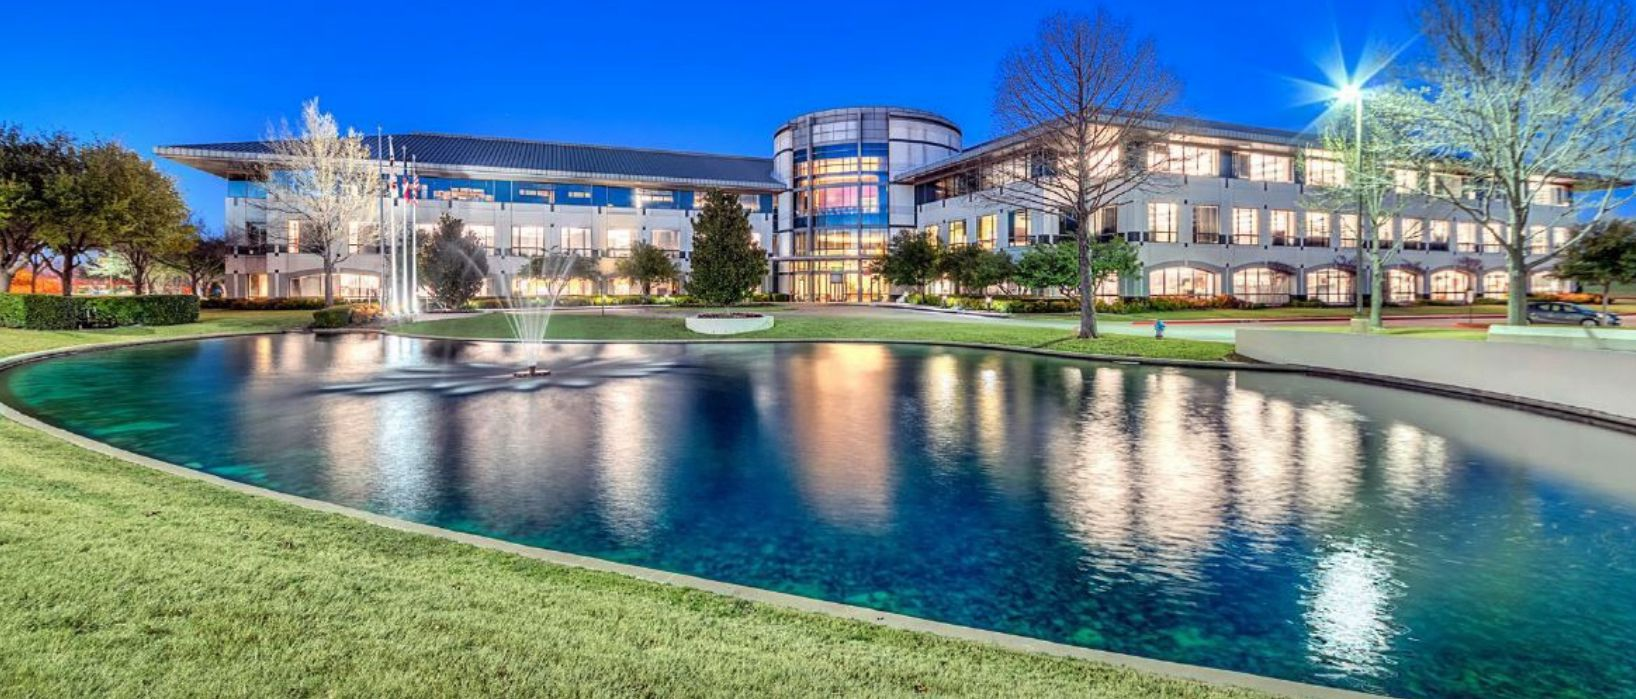 Dr Pepper's Plano headquarters was built in 1998.